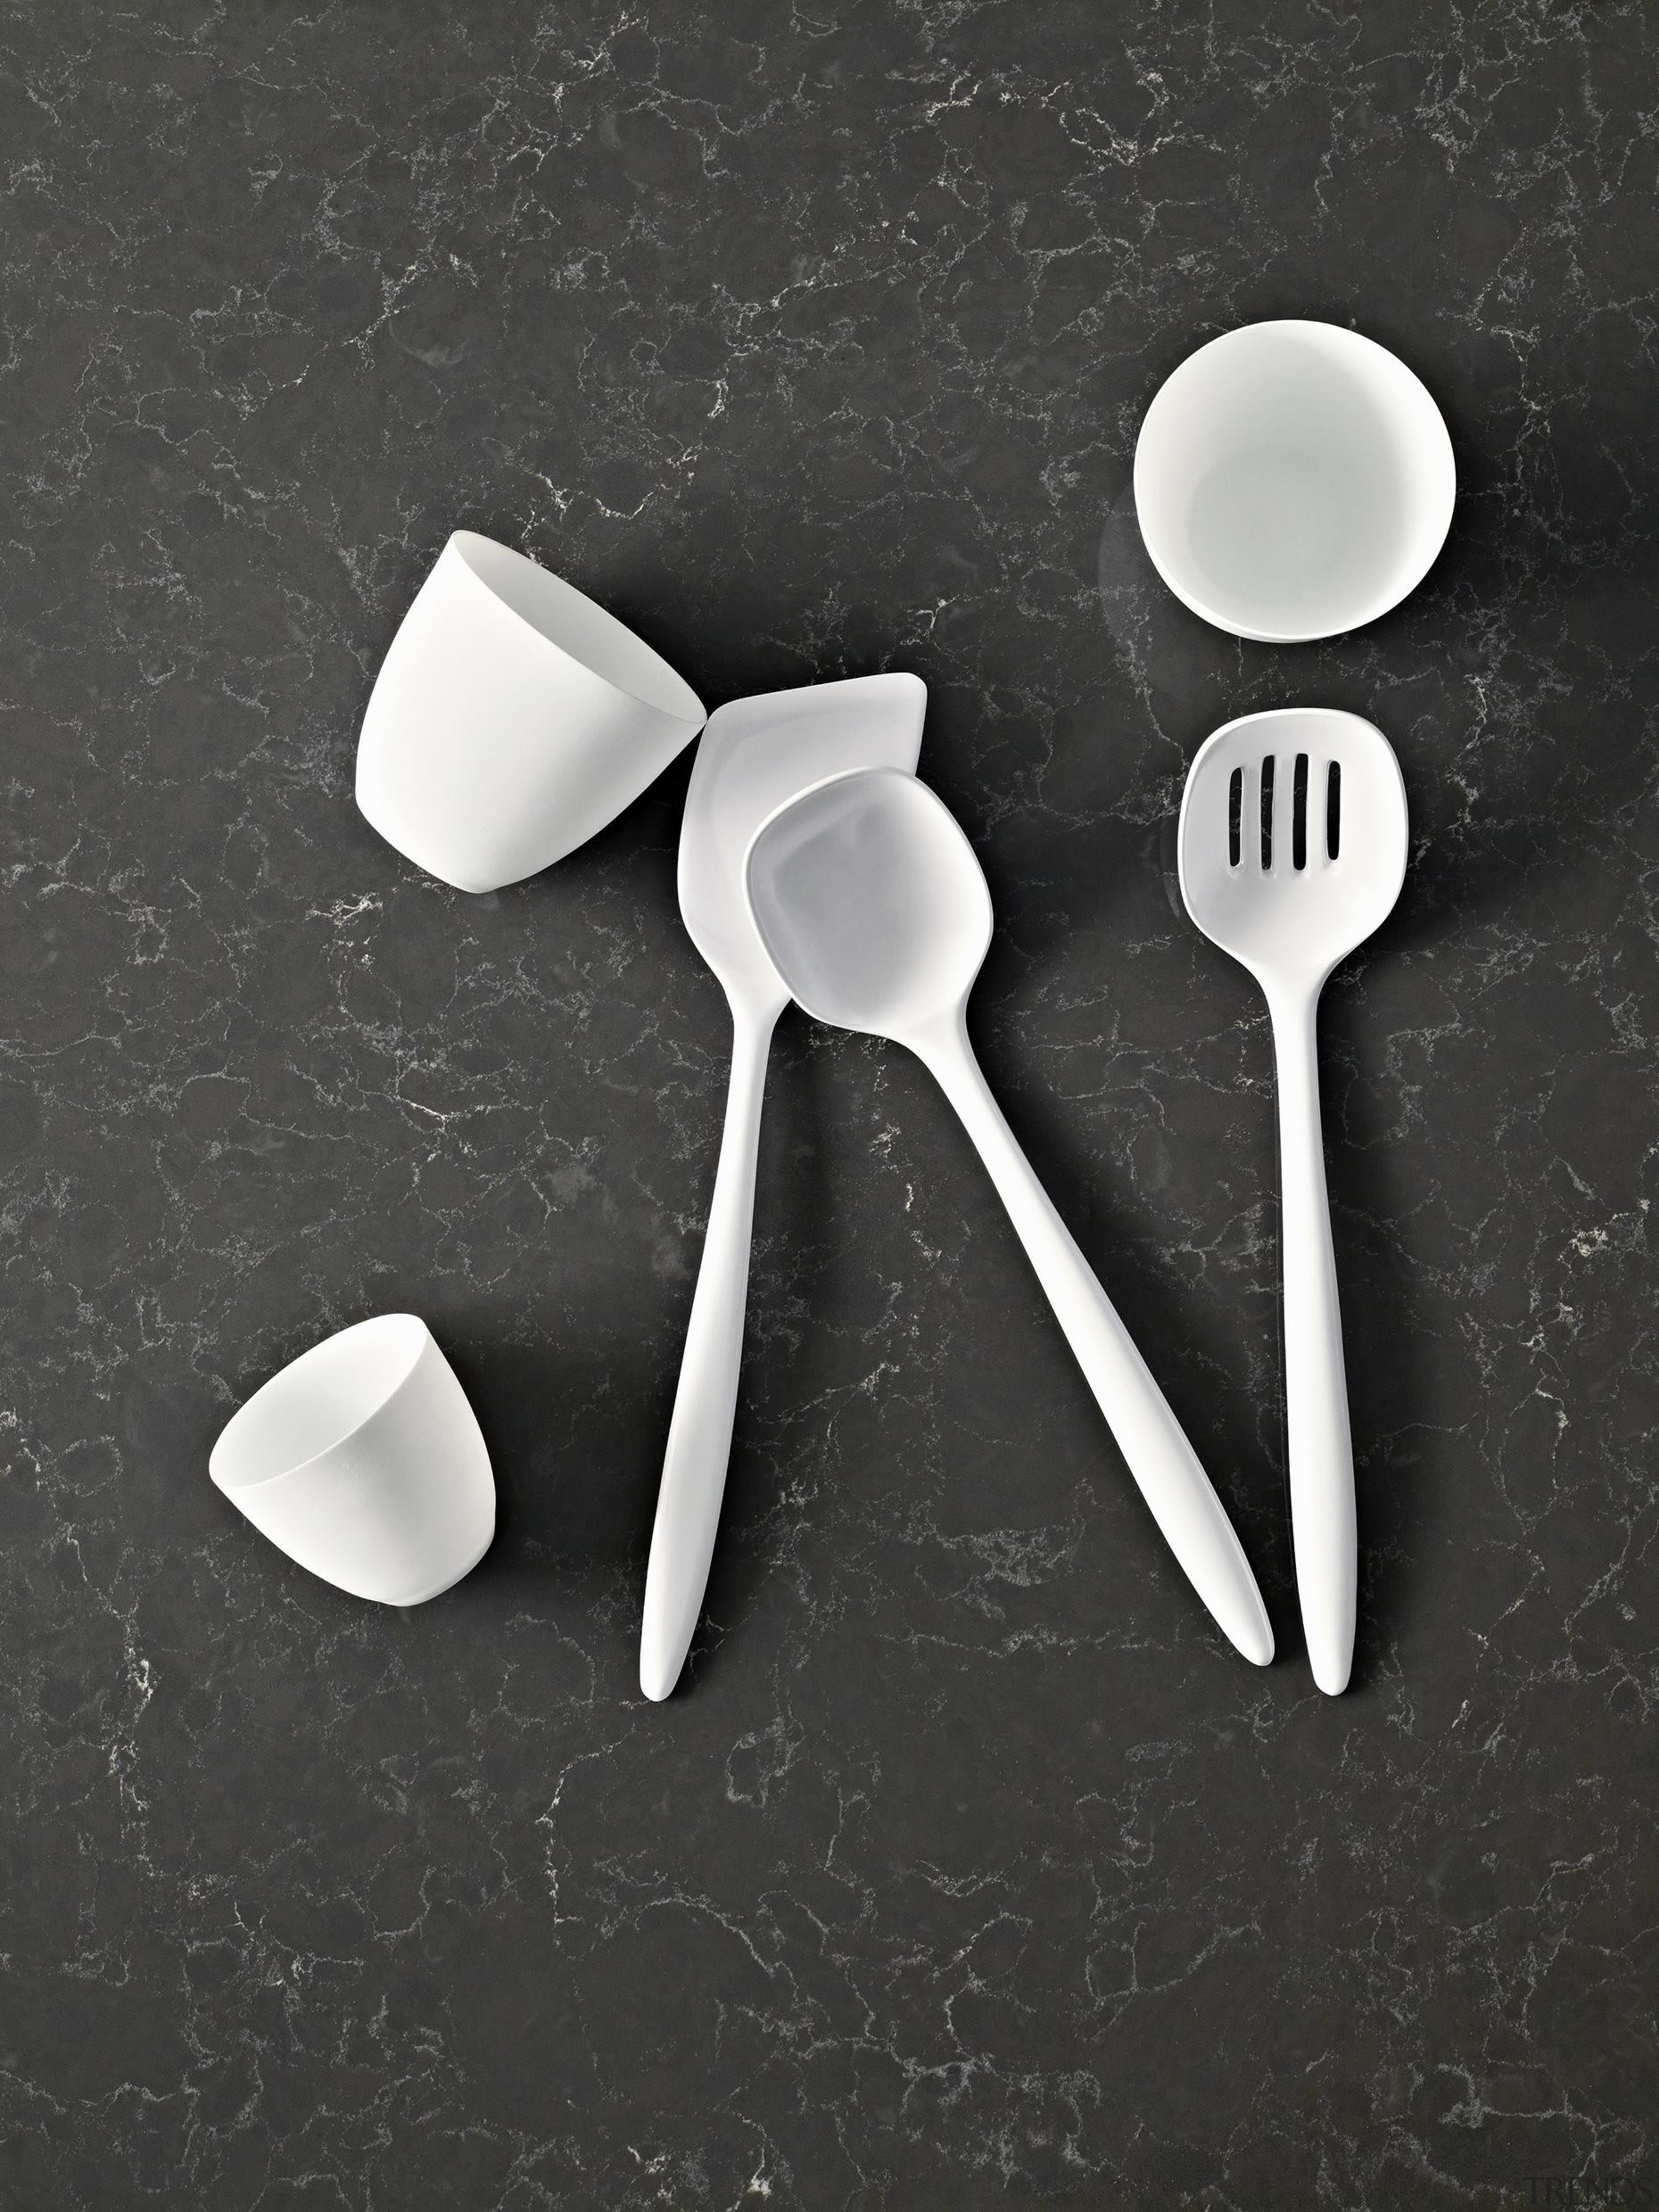 Smooth slate grey with chalky white veins. - black and white, cutlery, fork, product, product design, spoon, still life photography, tableware, black